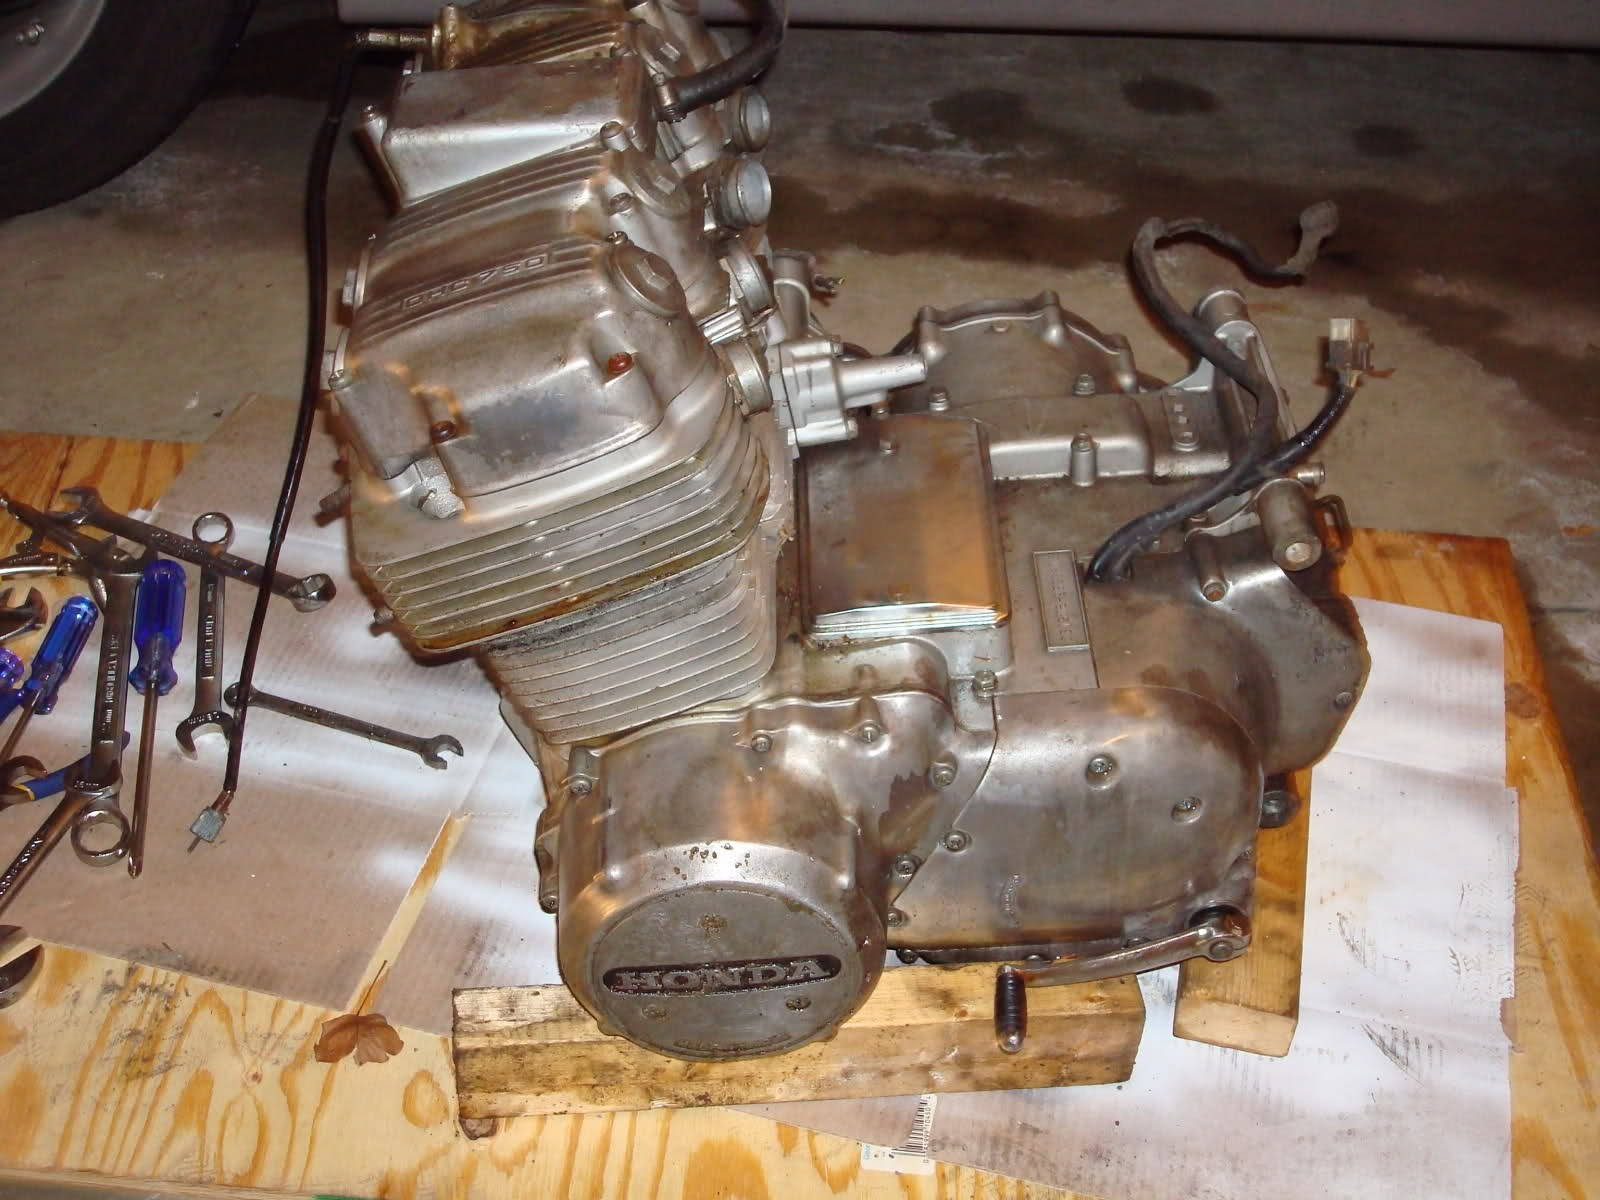 Honda Cb750 Engine Diagram Simple Motorcycle Wiring For Cafe Motor Rebuild Dummies Of